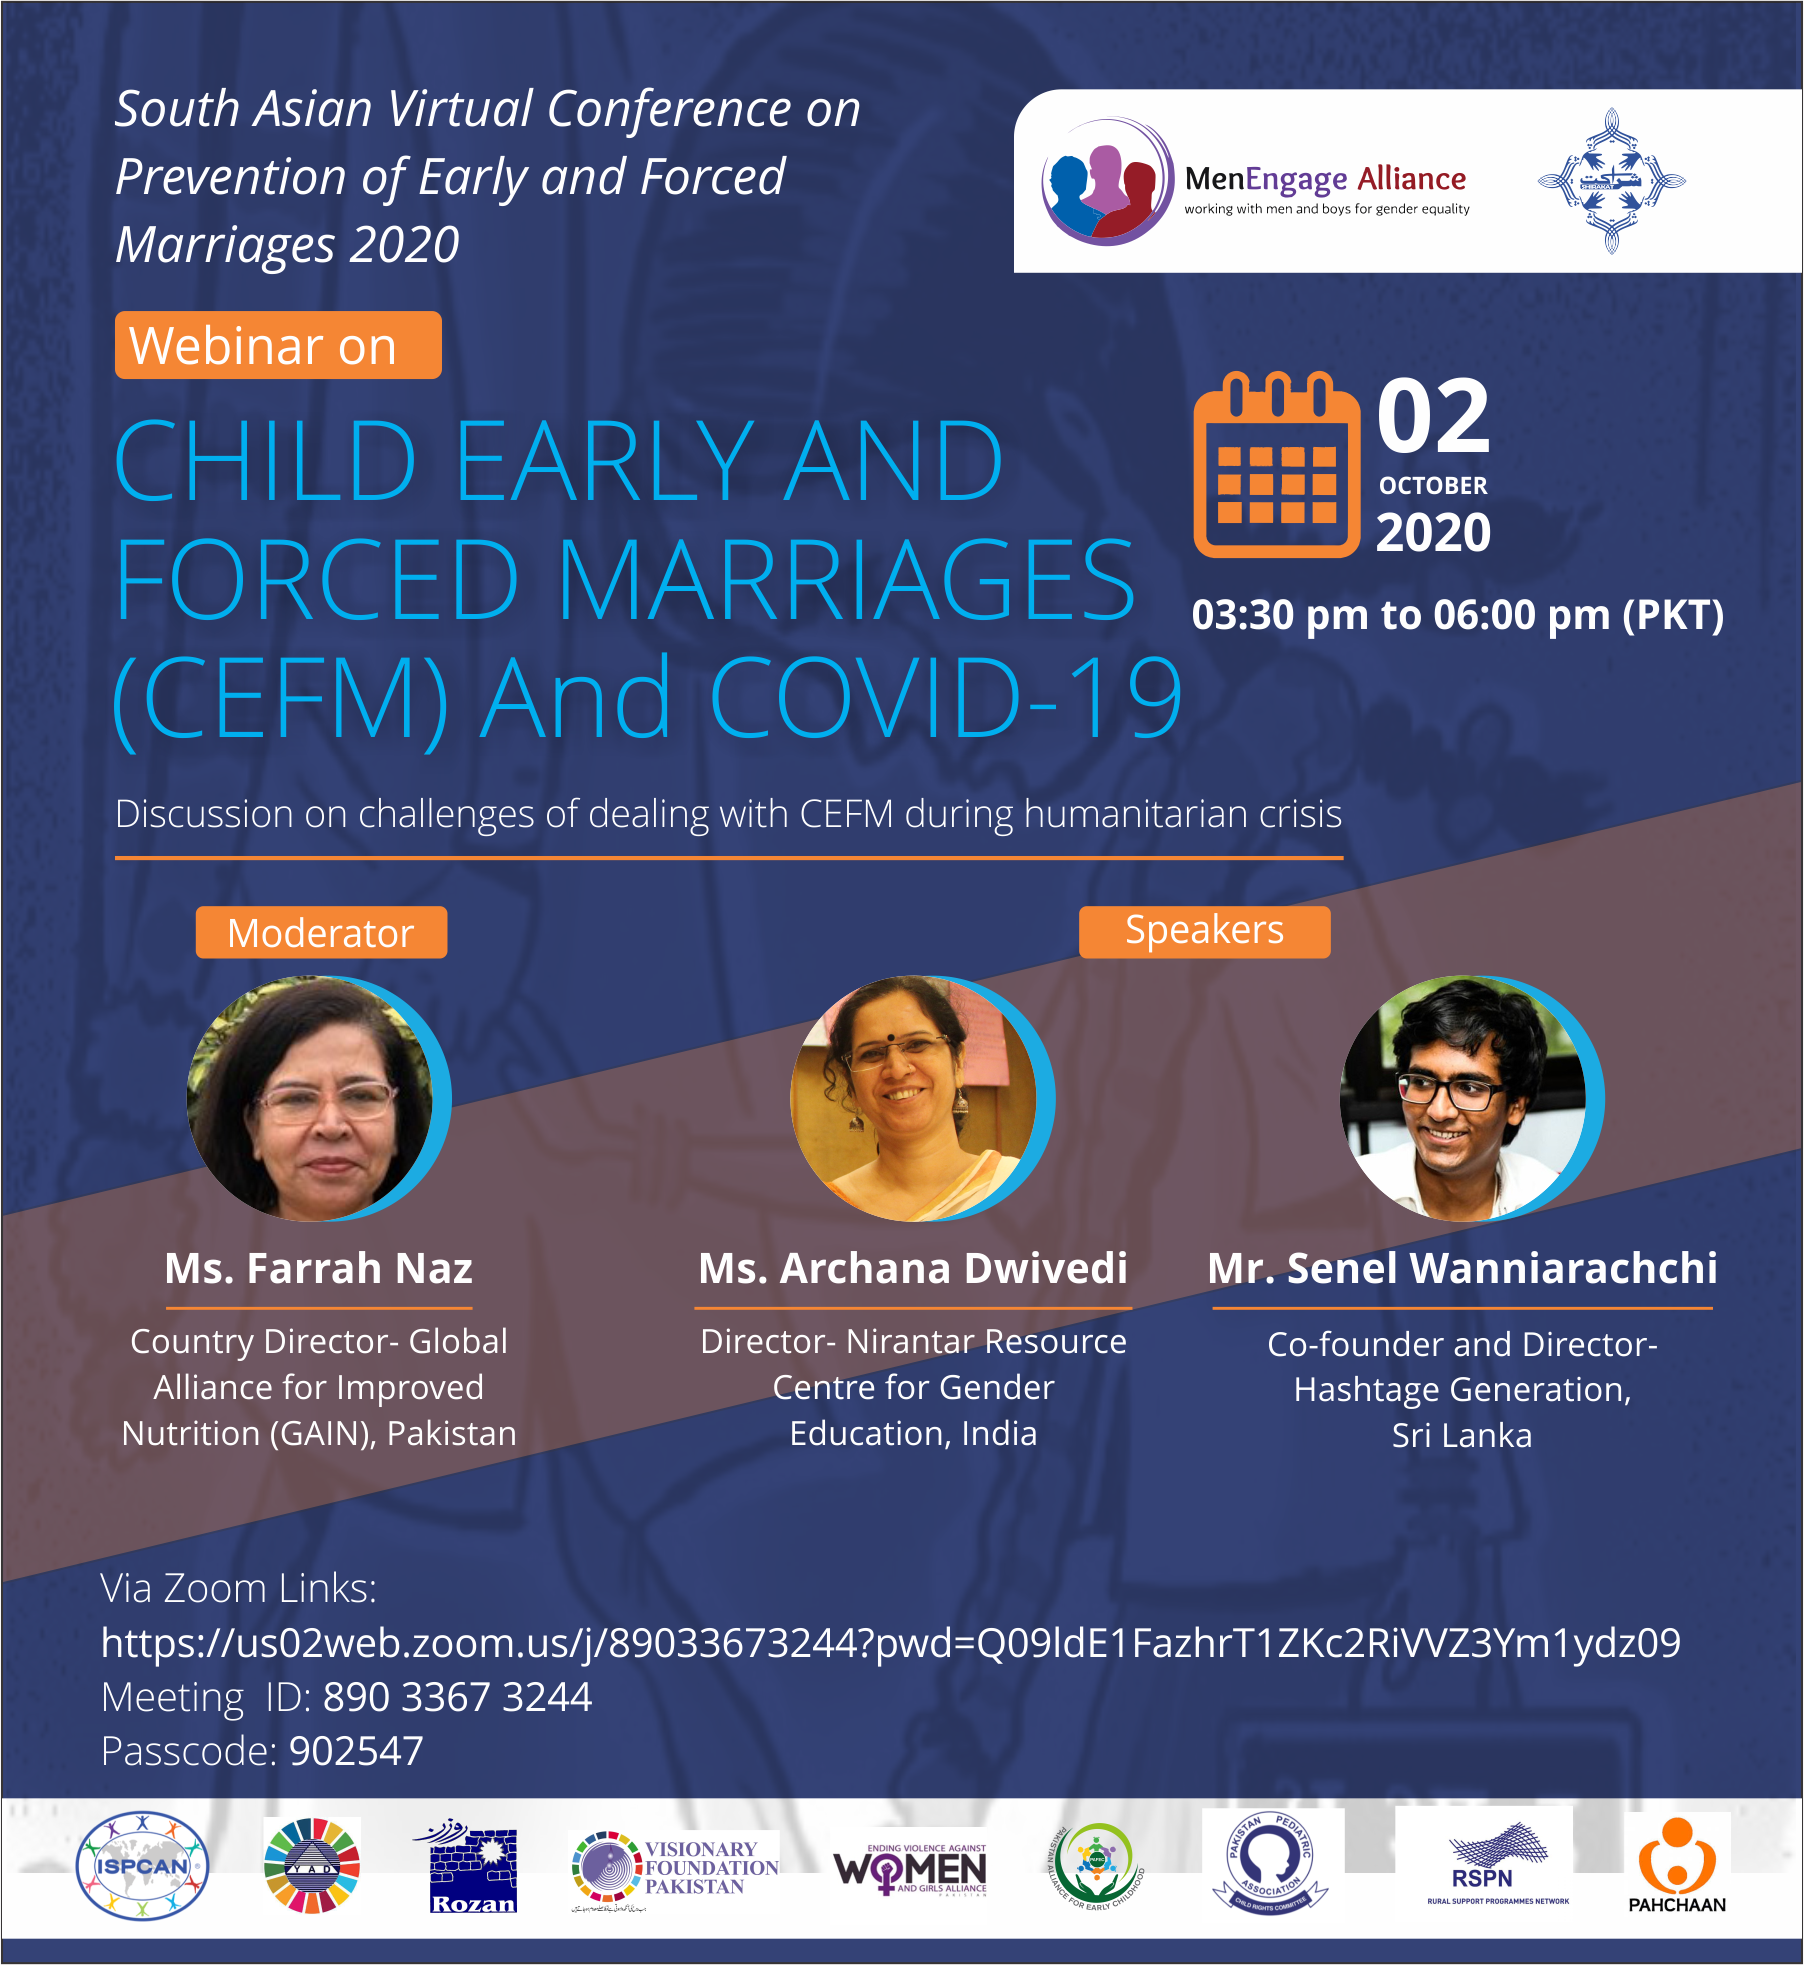 Webinar on Child Early and Forced Marriages (CEFM) and COVID-19